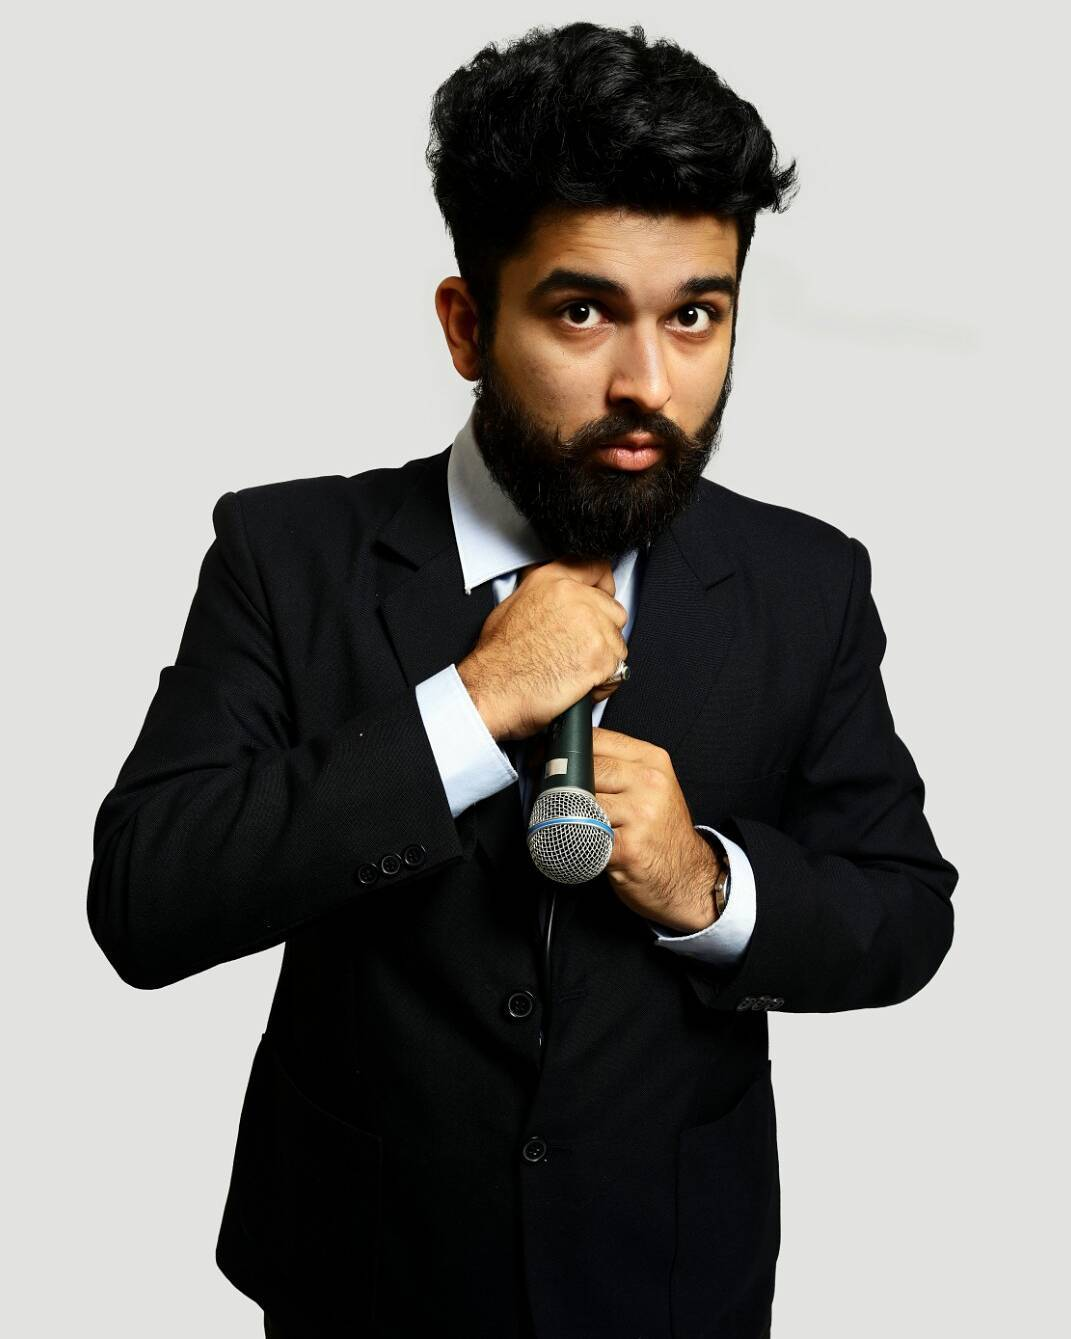 I didn't get any corporate job after MBA and now I perform for the same corporates  #nautanki #karma #standup #standupcomedy #comedian #comedy #corporate  P.C. : @blackacestudio